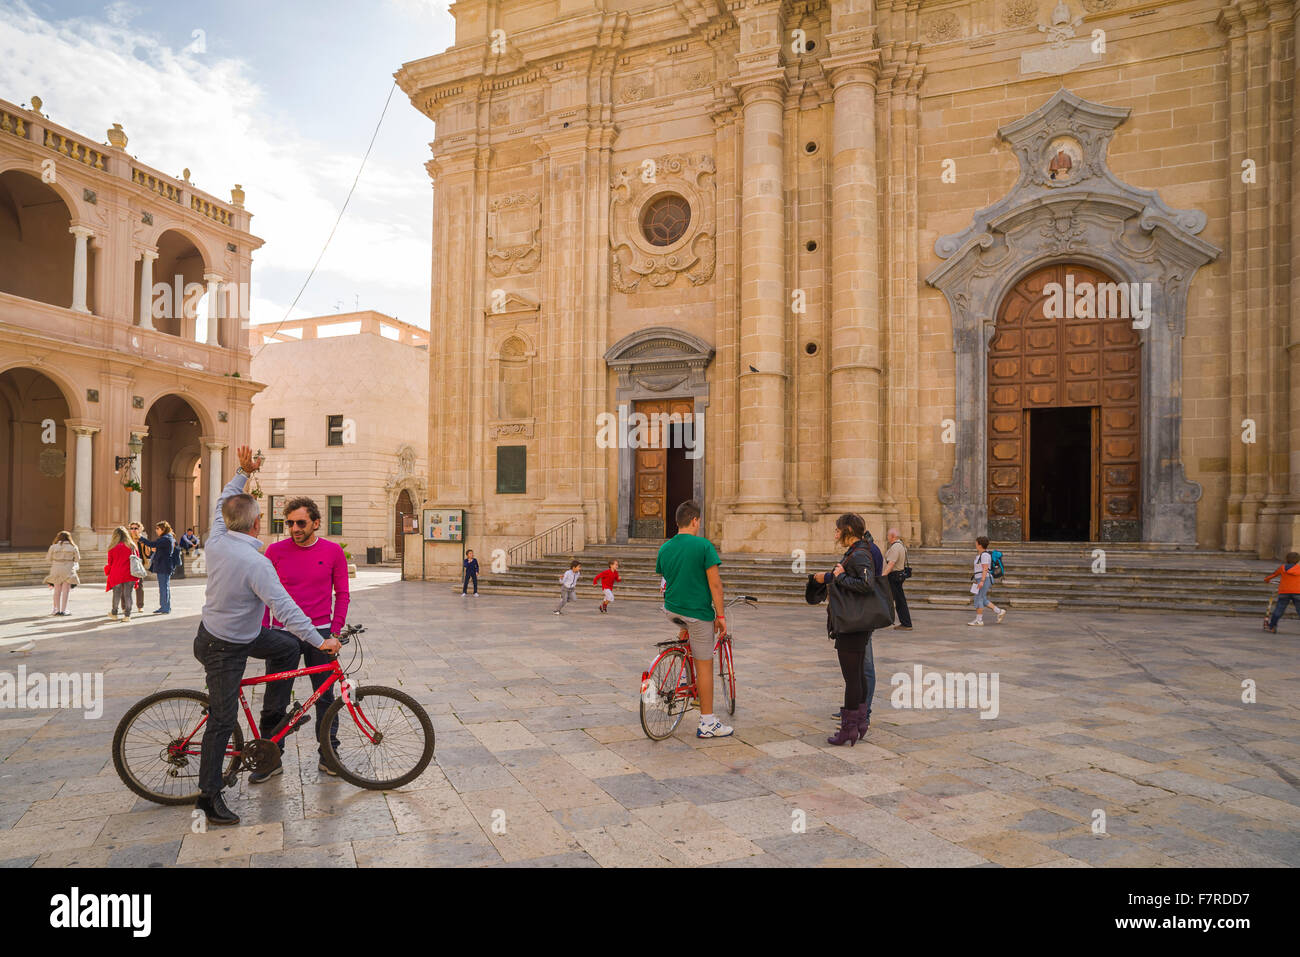 Sicilian people, view of people in Marsala on a Sunday morning meeting in the town square (Piazza della Repubblica) - Stock Image